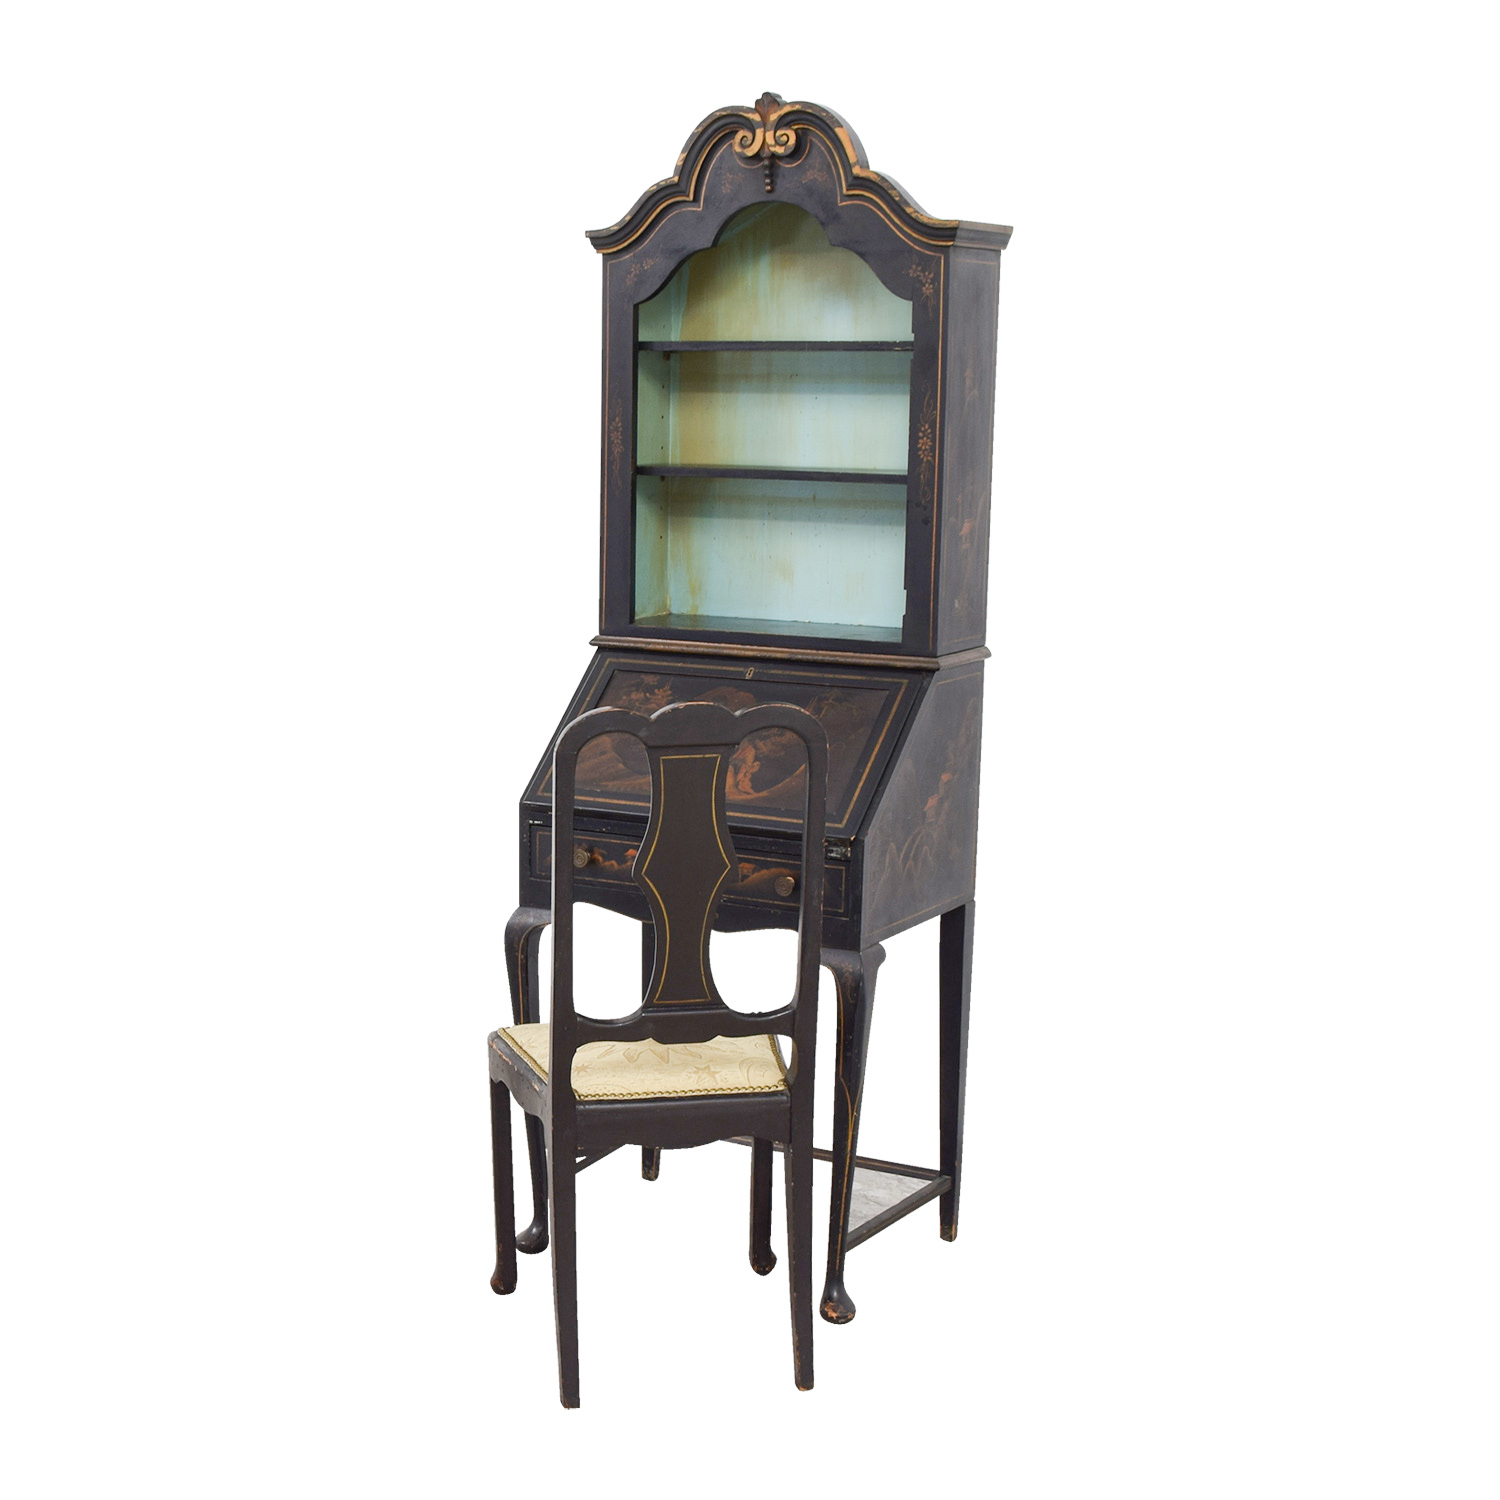 Greatest 71% OFF - Antique Chinoiserie Secretary Desk with Chair / Storage CI37